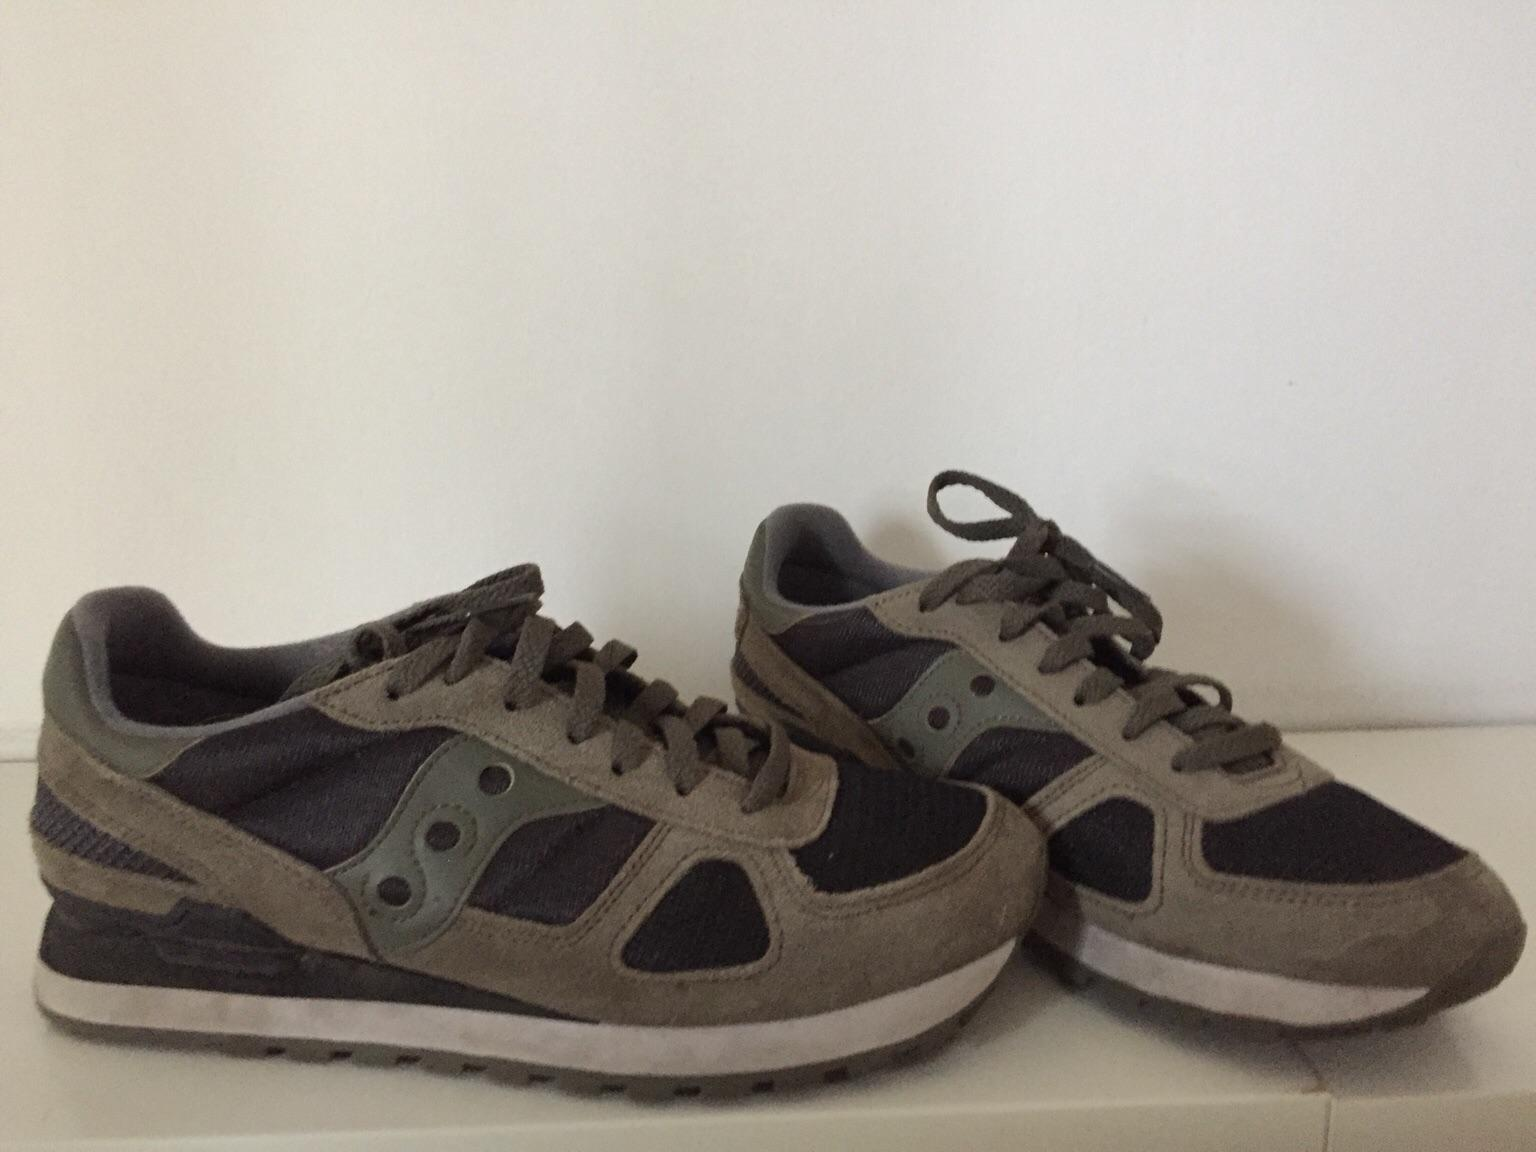 Saucony uomo n 42 in 10045 Piossasco for €50.00 for sale